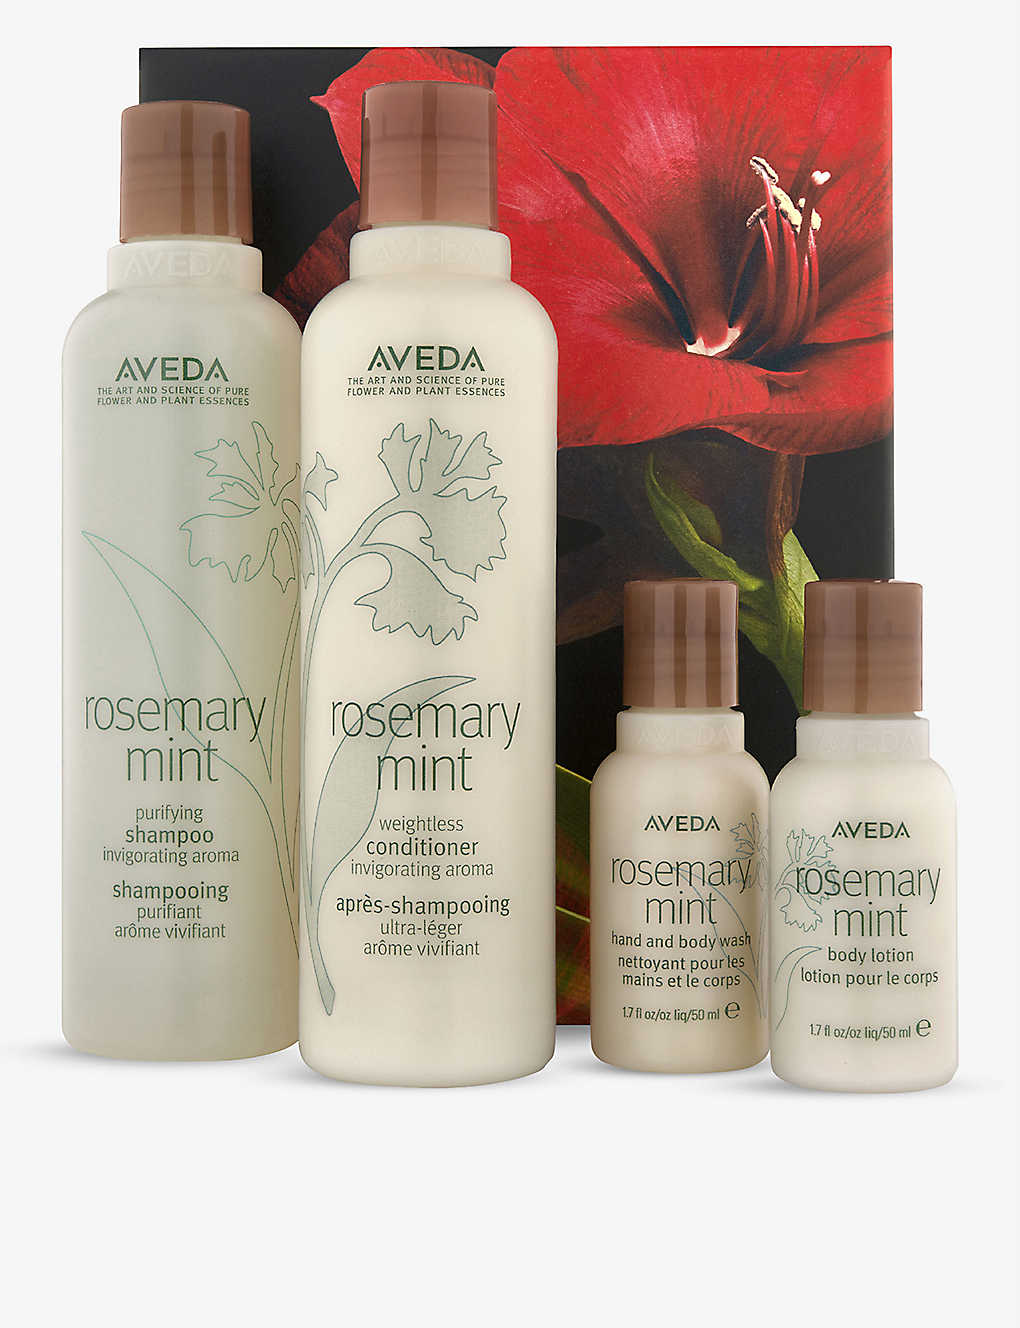 AVEDA: Rosemary Mint invigorating hair and body care set